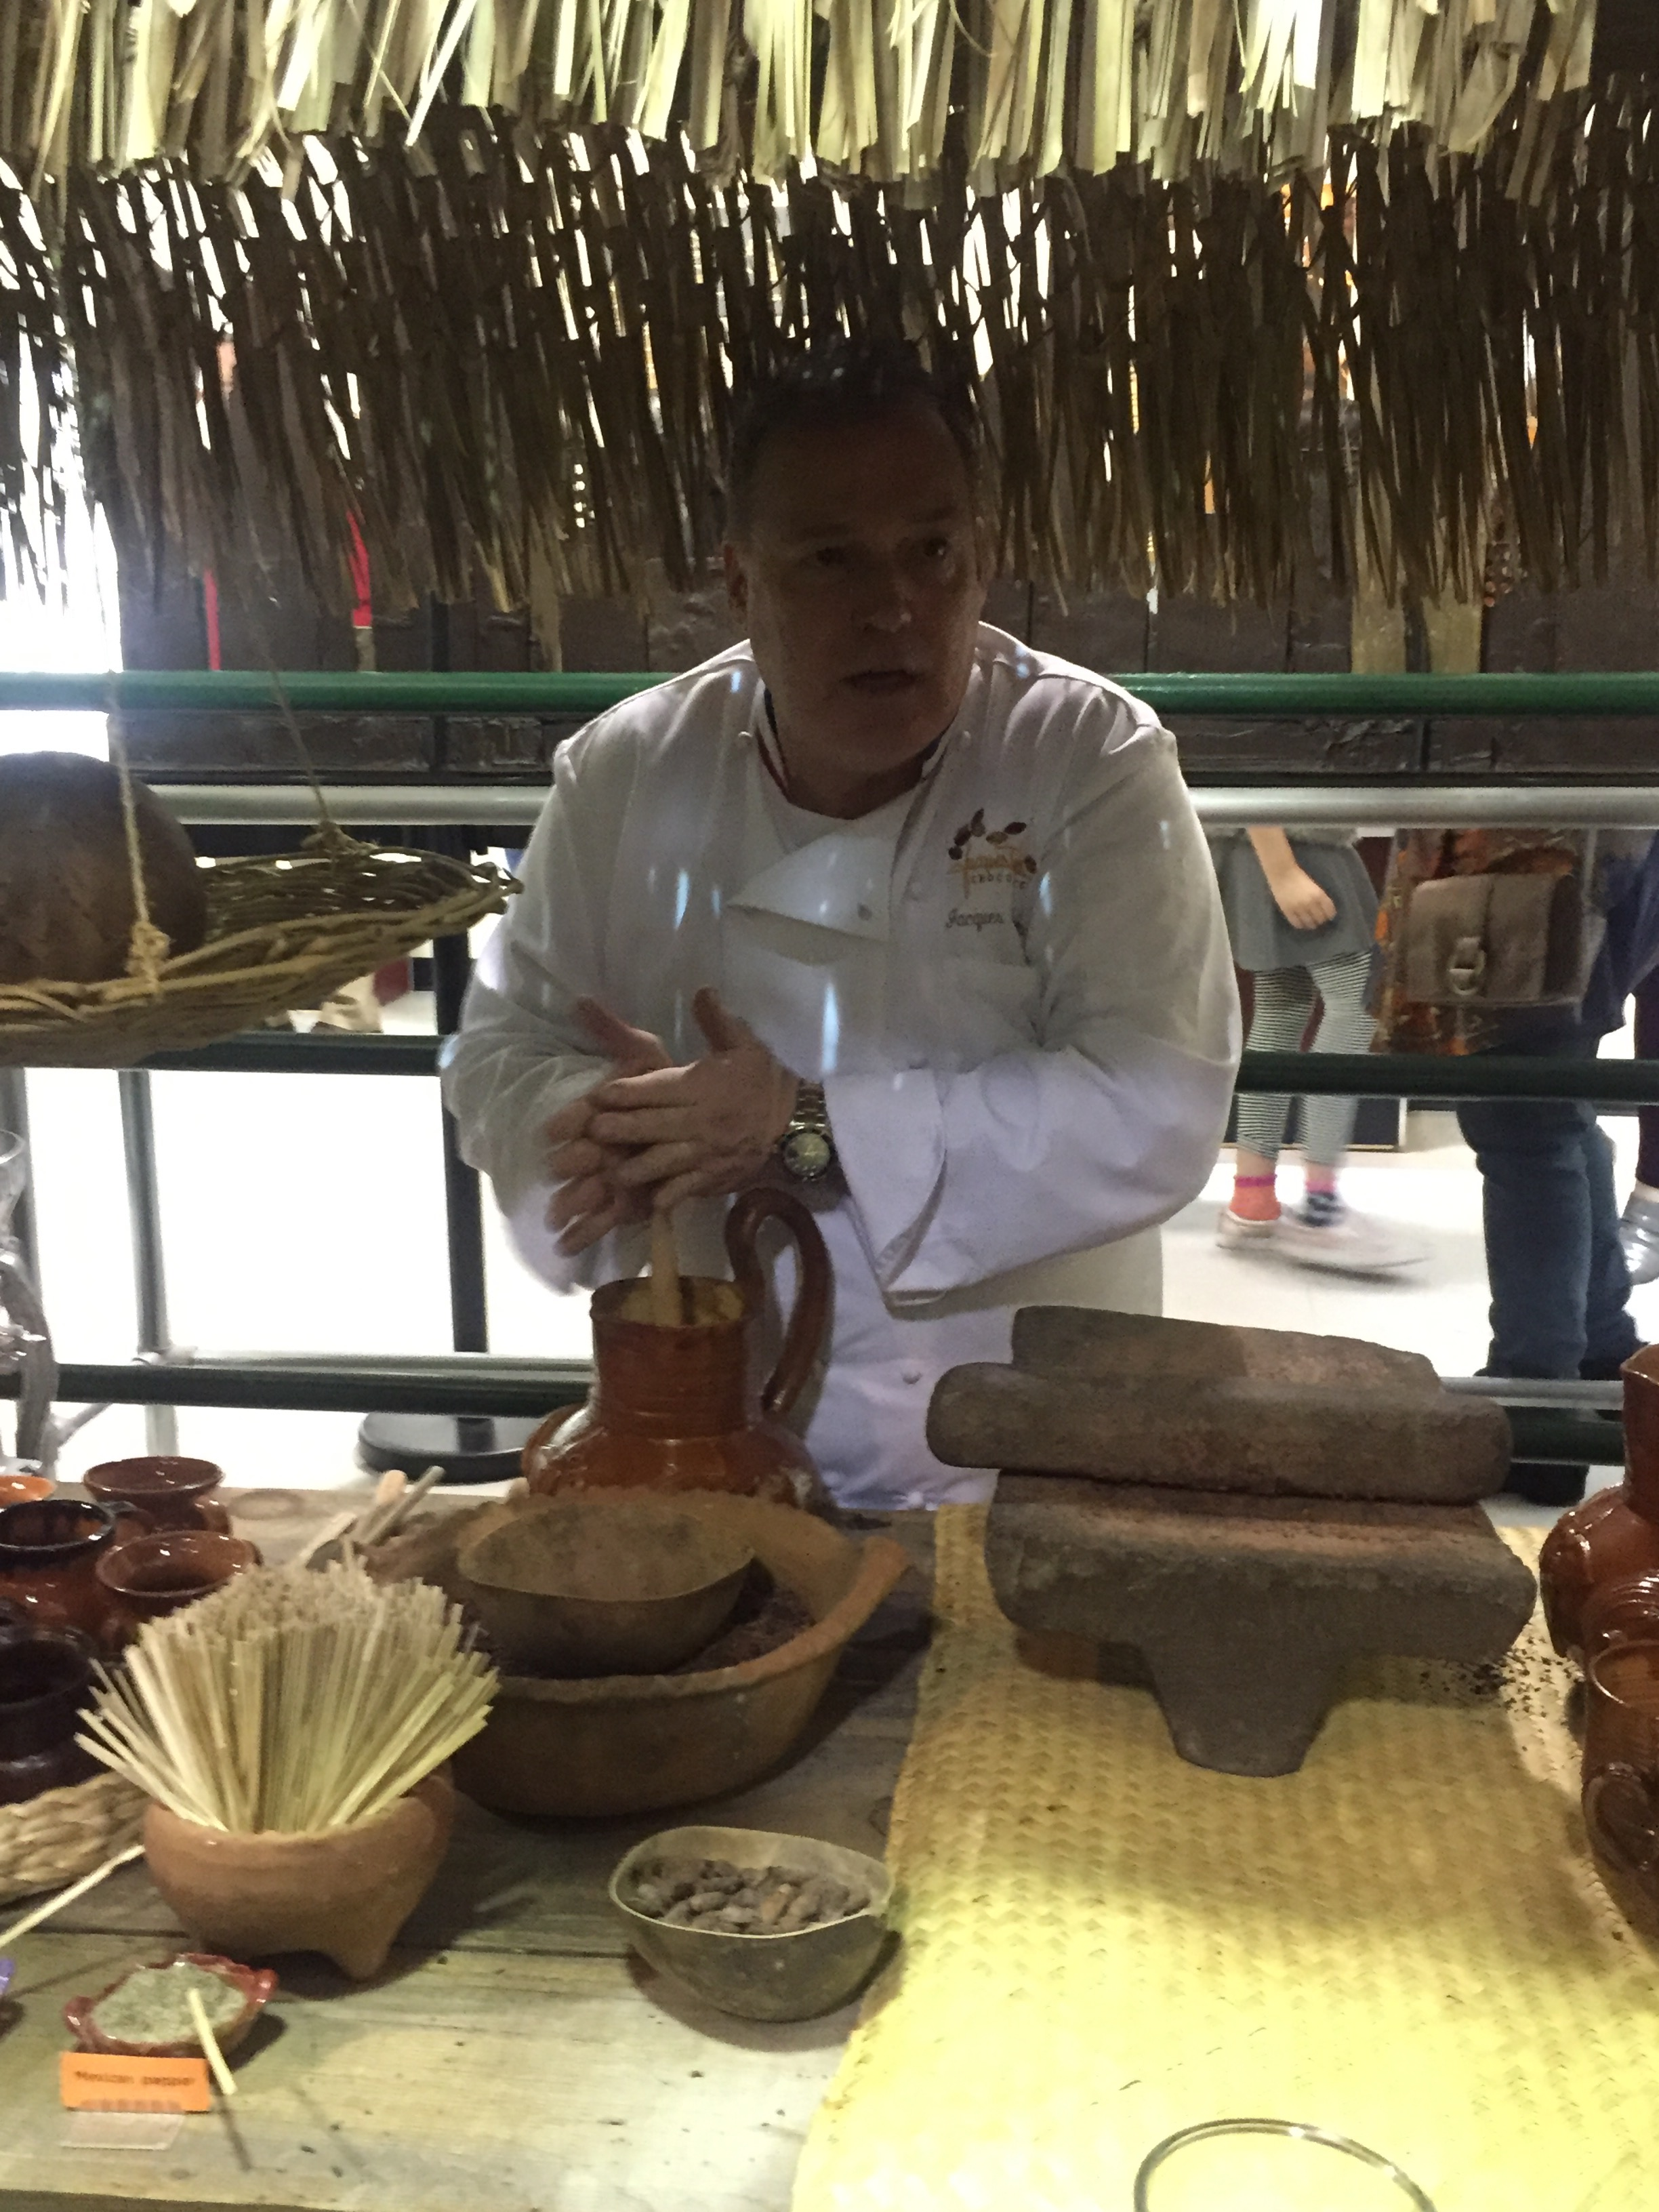 Here, chocolatier Jacques Torres demonstrates the making of Mayan-style hot chocolate, unsweetened.